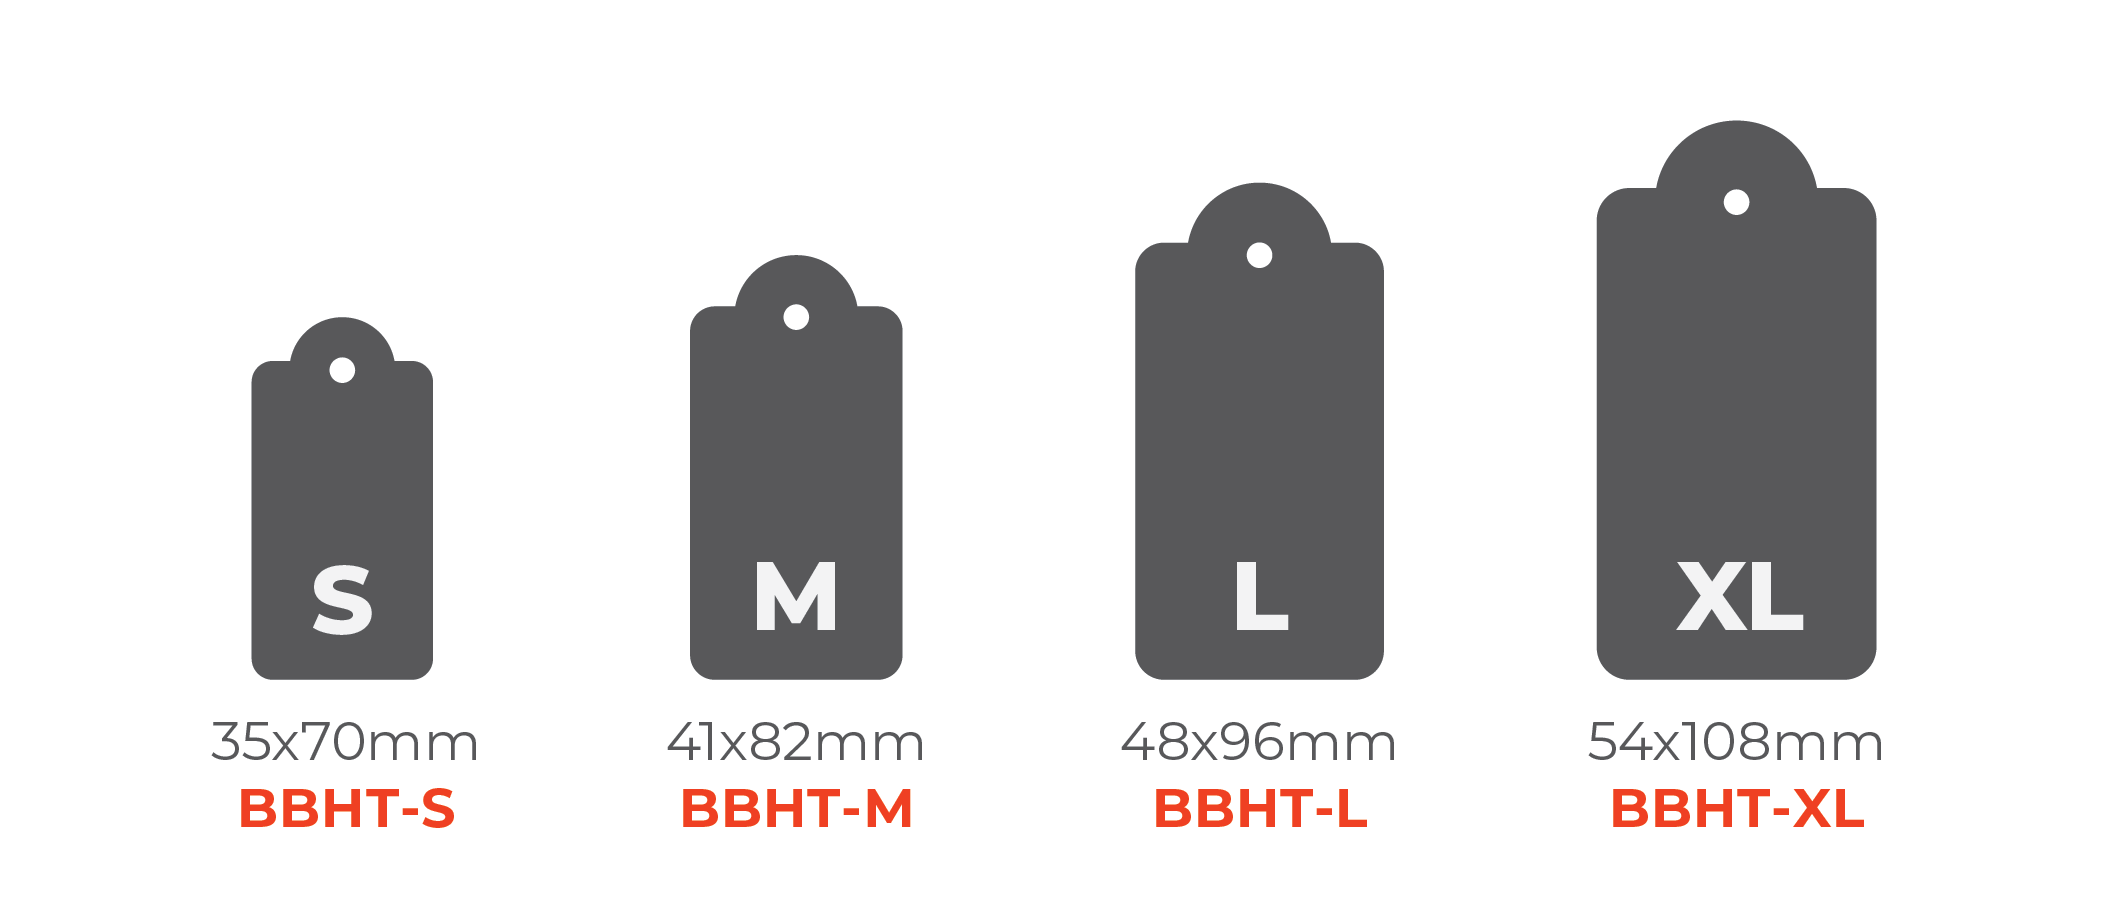 Double Pasted Hang Tags - Bubble Tags 0x0mm 01 Image